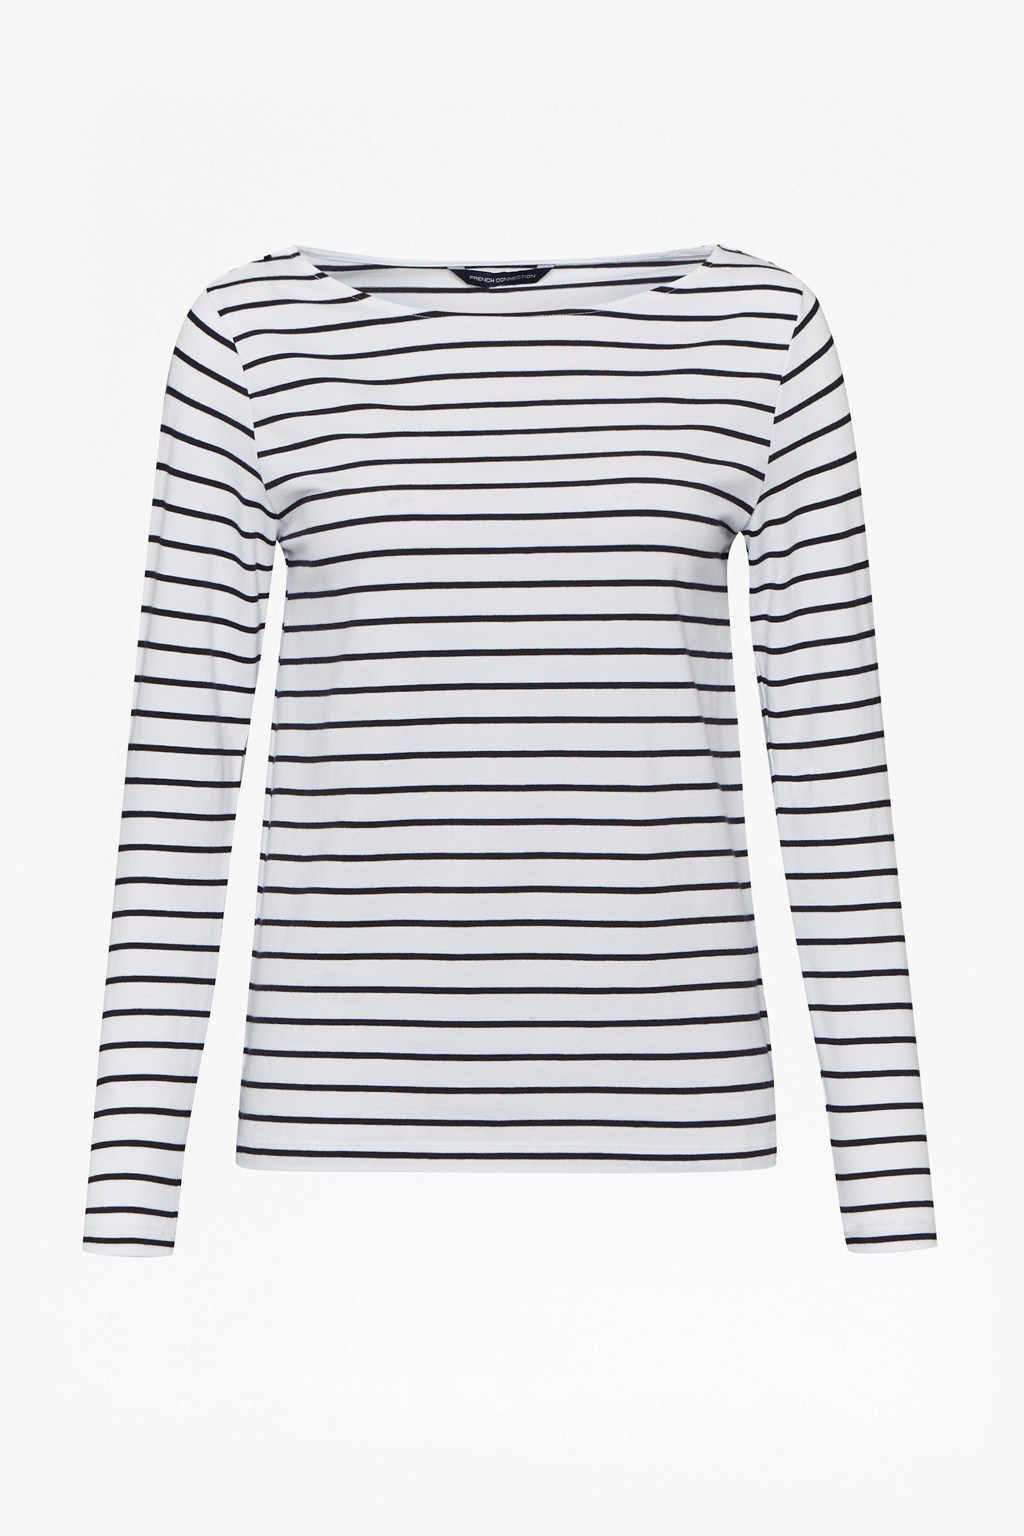 Tim tim long sleeve striped top tops french connection for French cut shirt sleeve